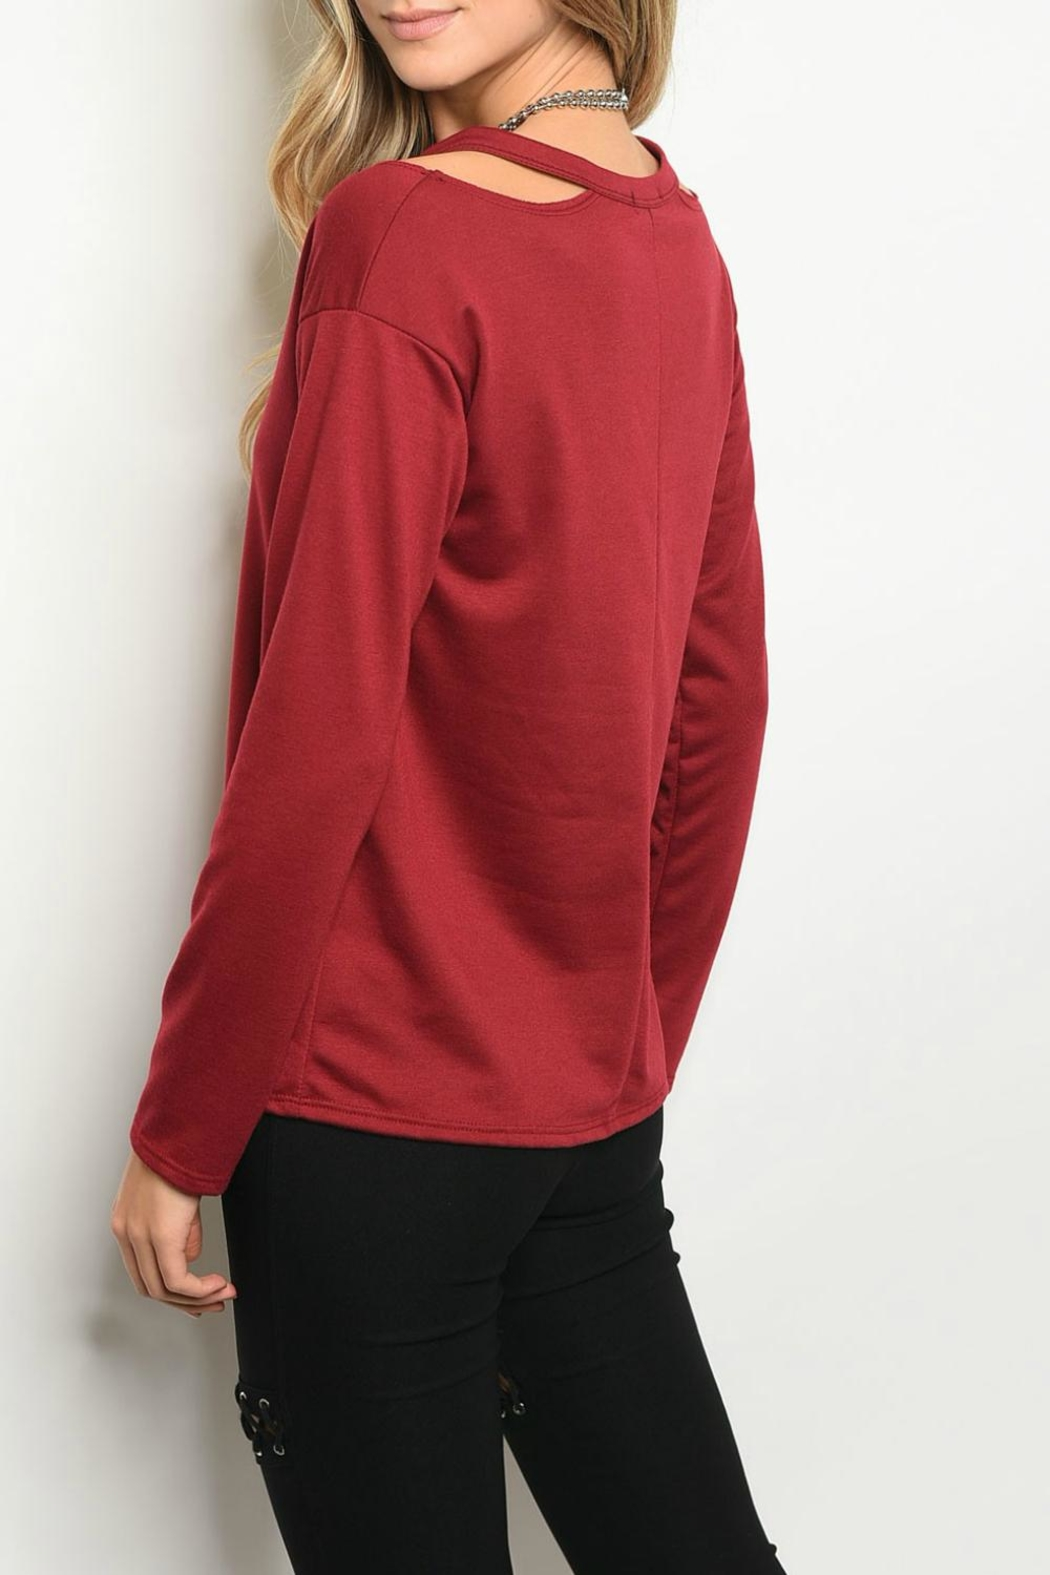 Sweet Claire Burgundy  Sweater - Front Full Image